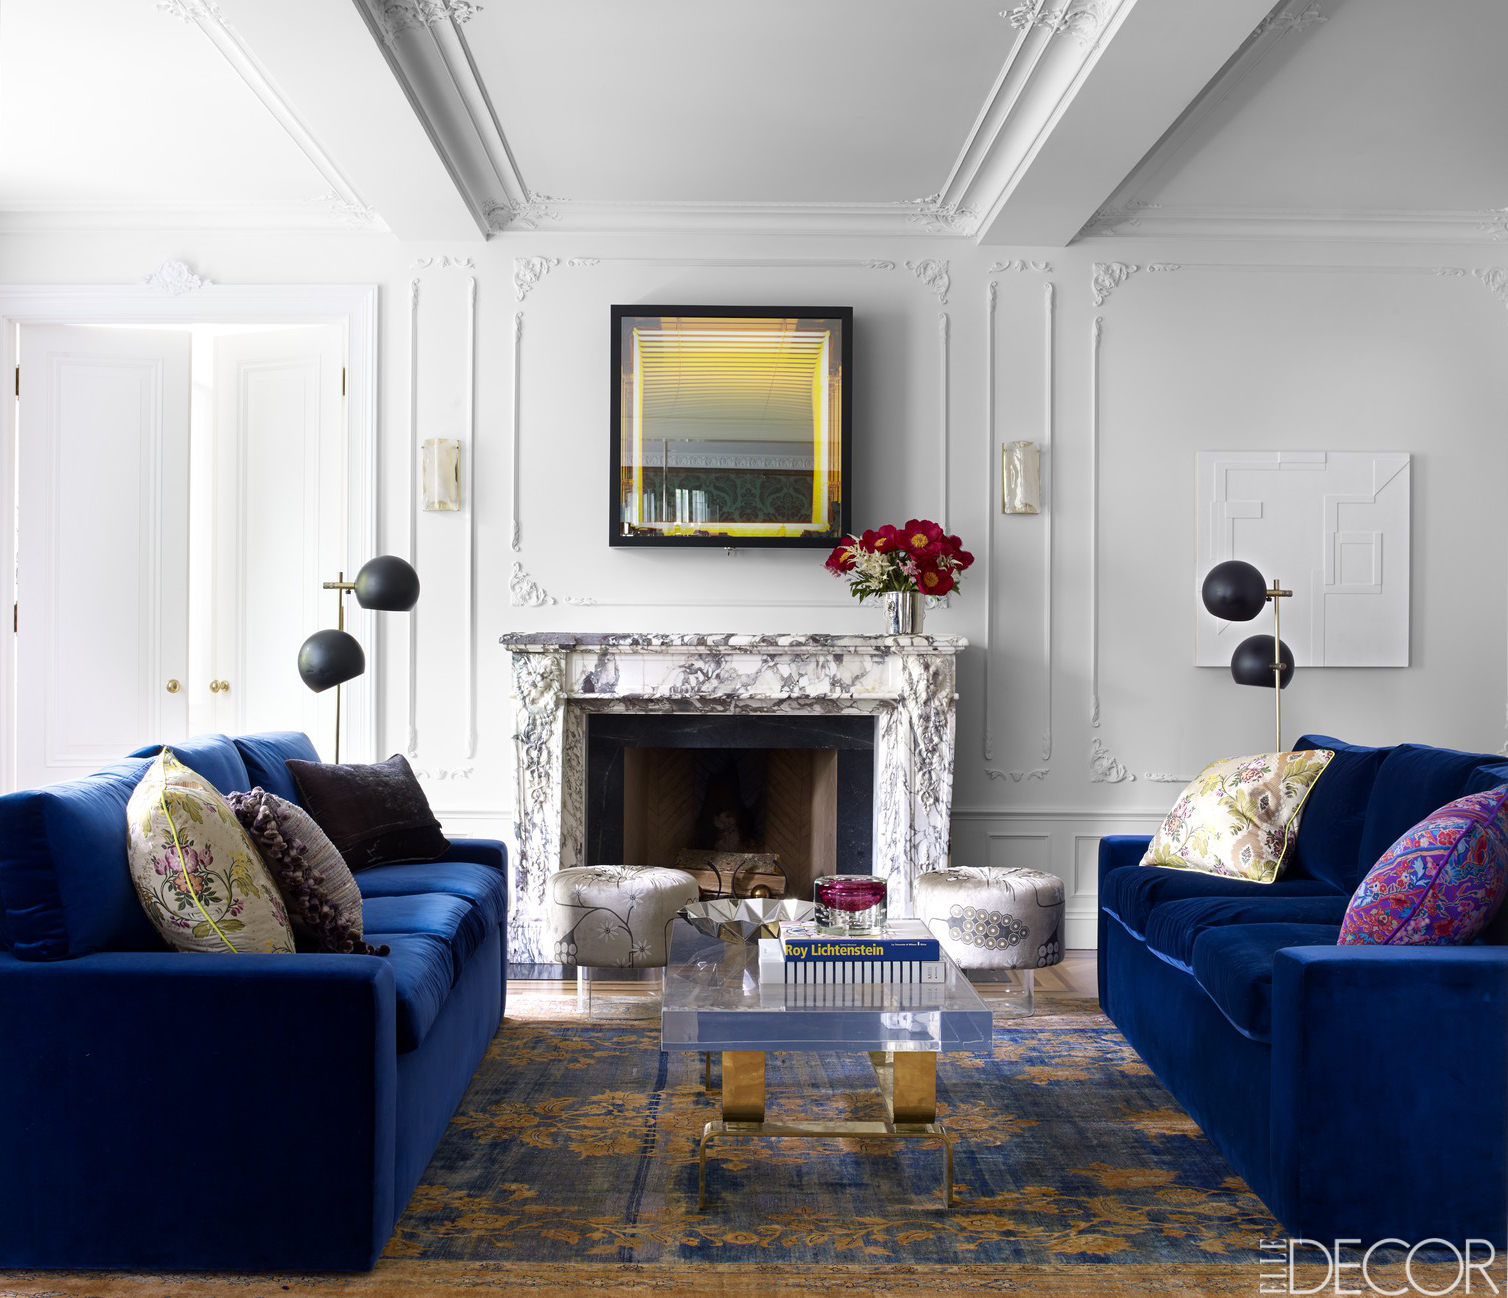 House tour a new york apartment with dramatic flair - Pictures of decorated living rooms ...